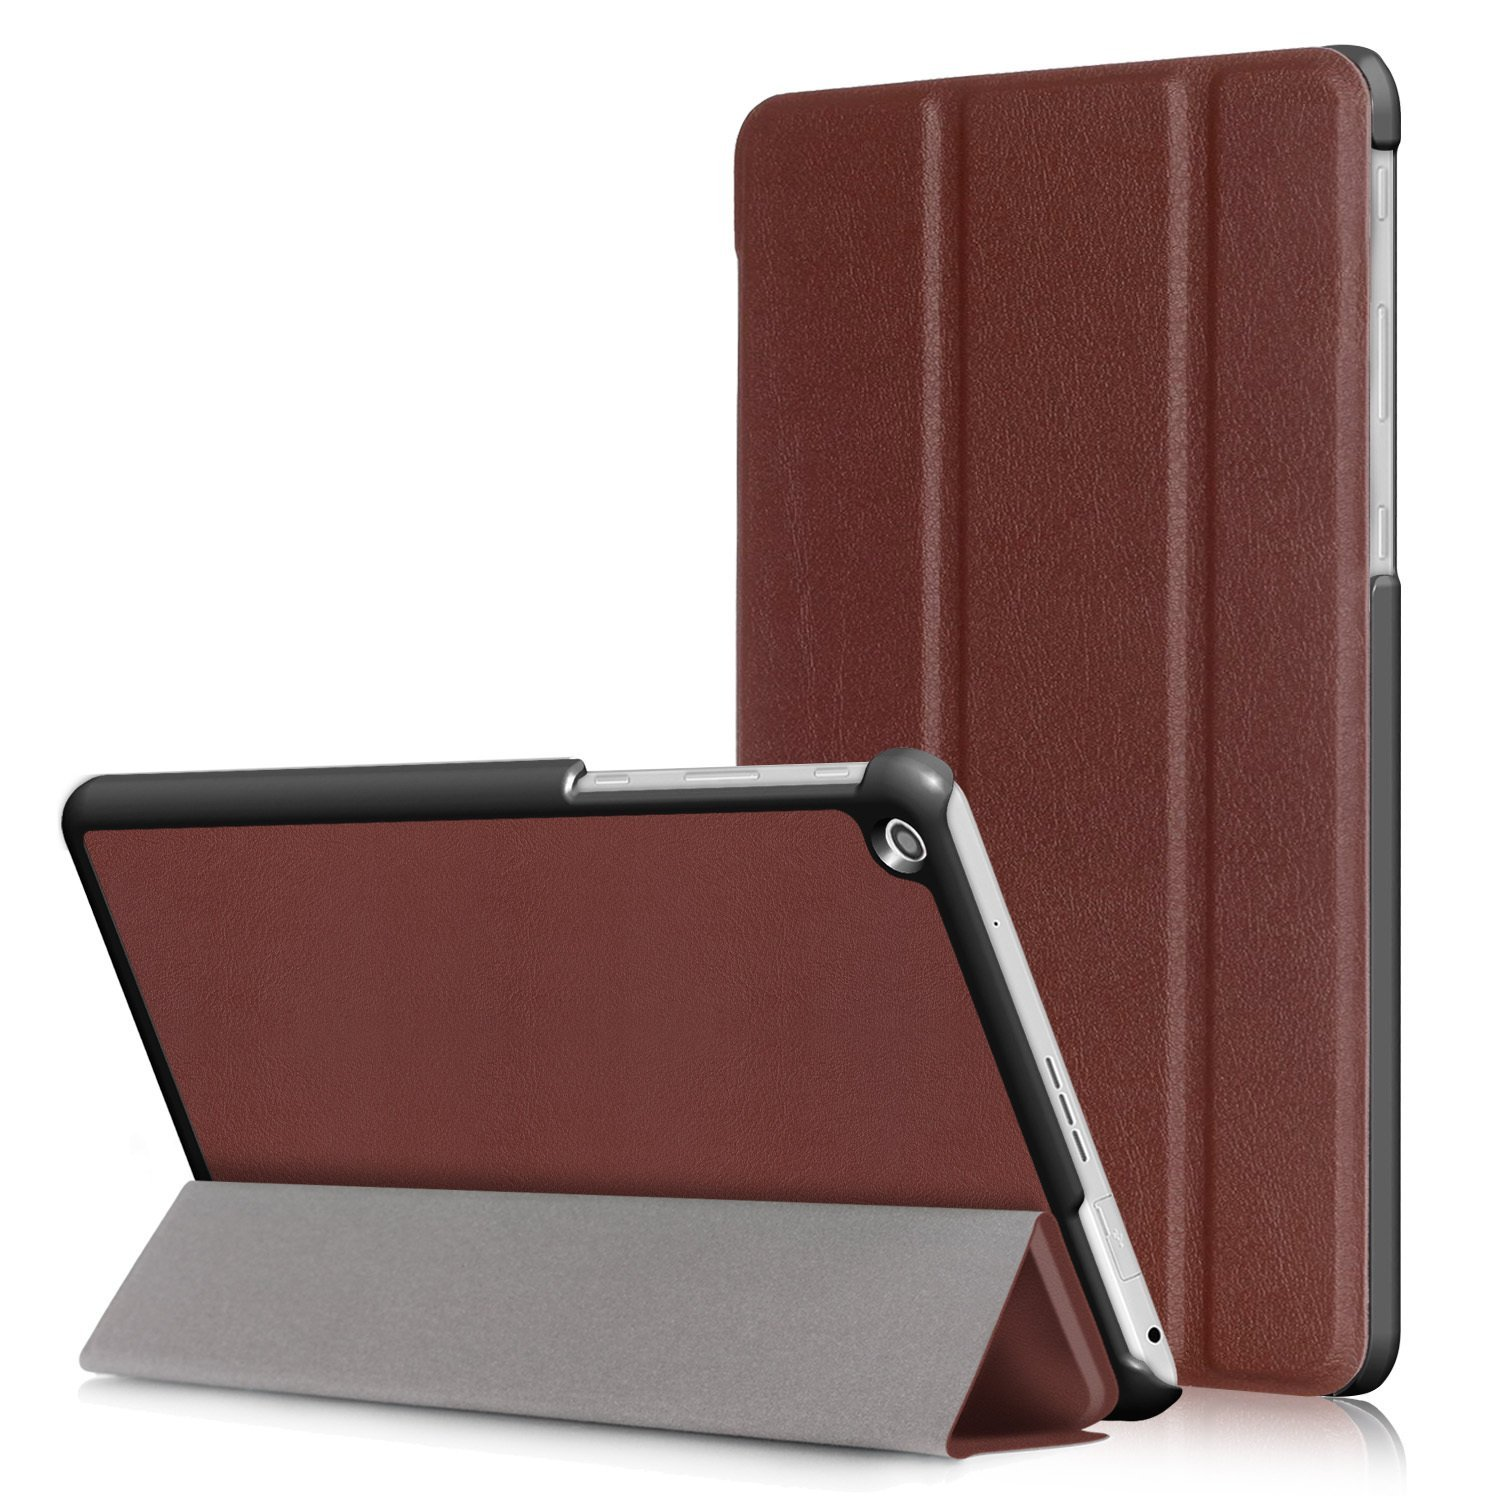 """LG G PAD 3 10.1 X760 Case, Goodest Ultra Slim Tri-Fold Magnetic PU Leather Stand Cover Hard Protector Shell Case for LG G PAD 3 10.1 X760 10.1"""" Tablet, Brown"""